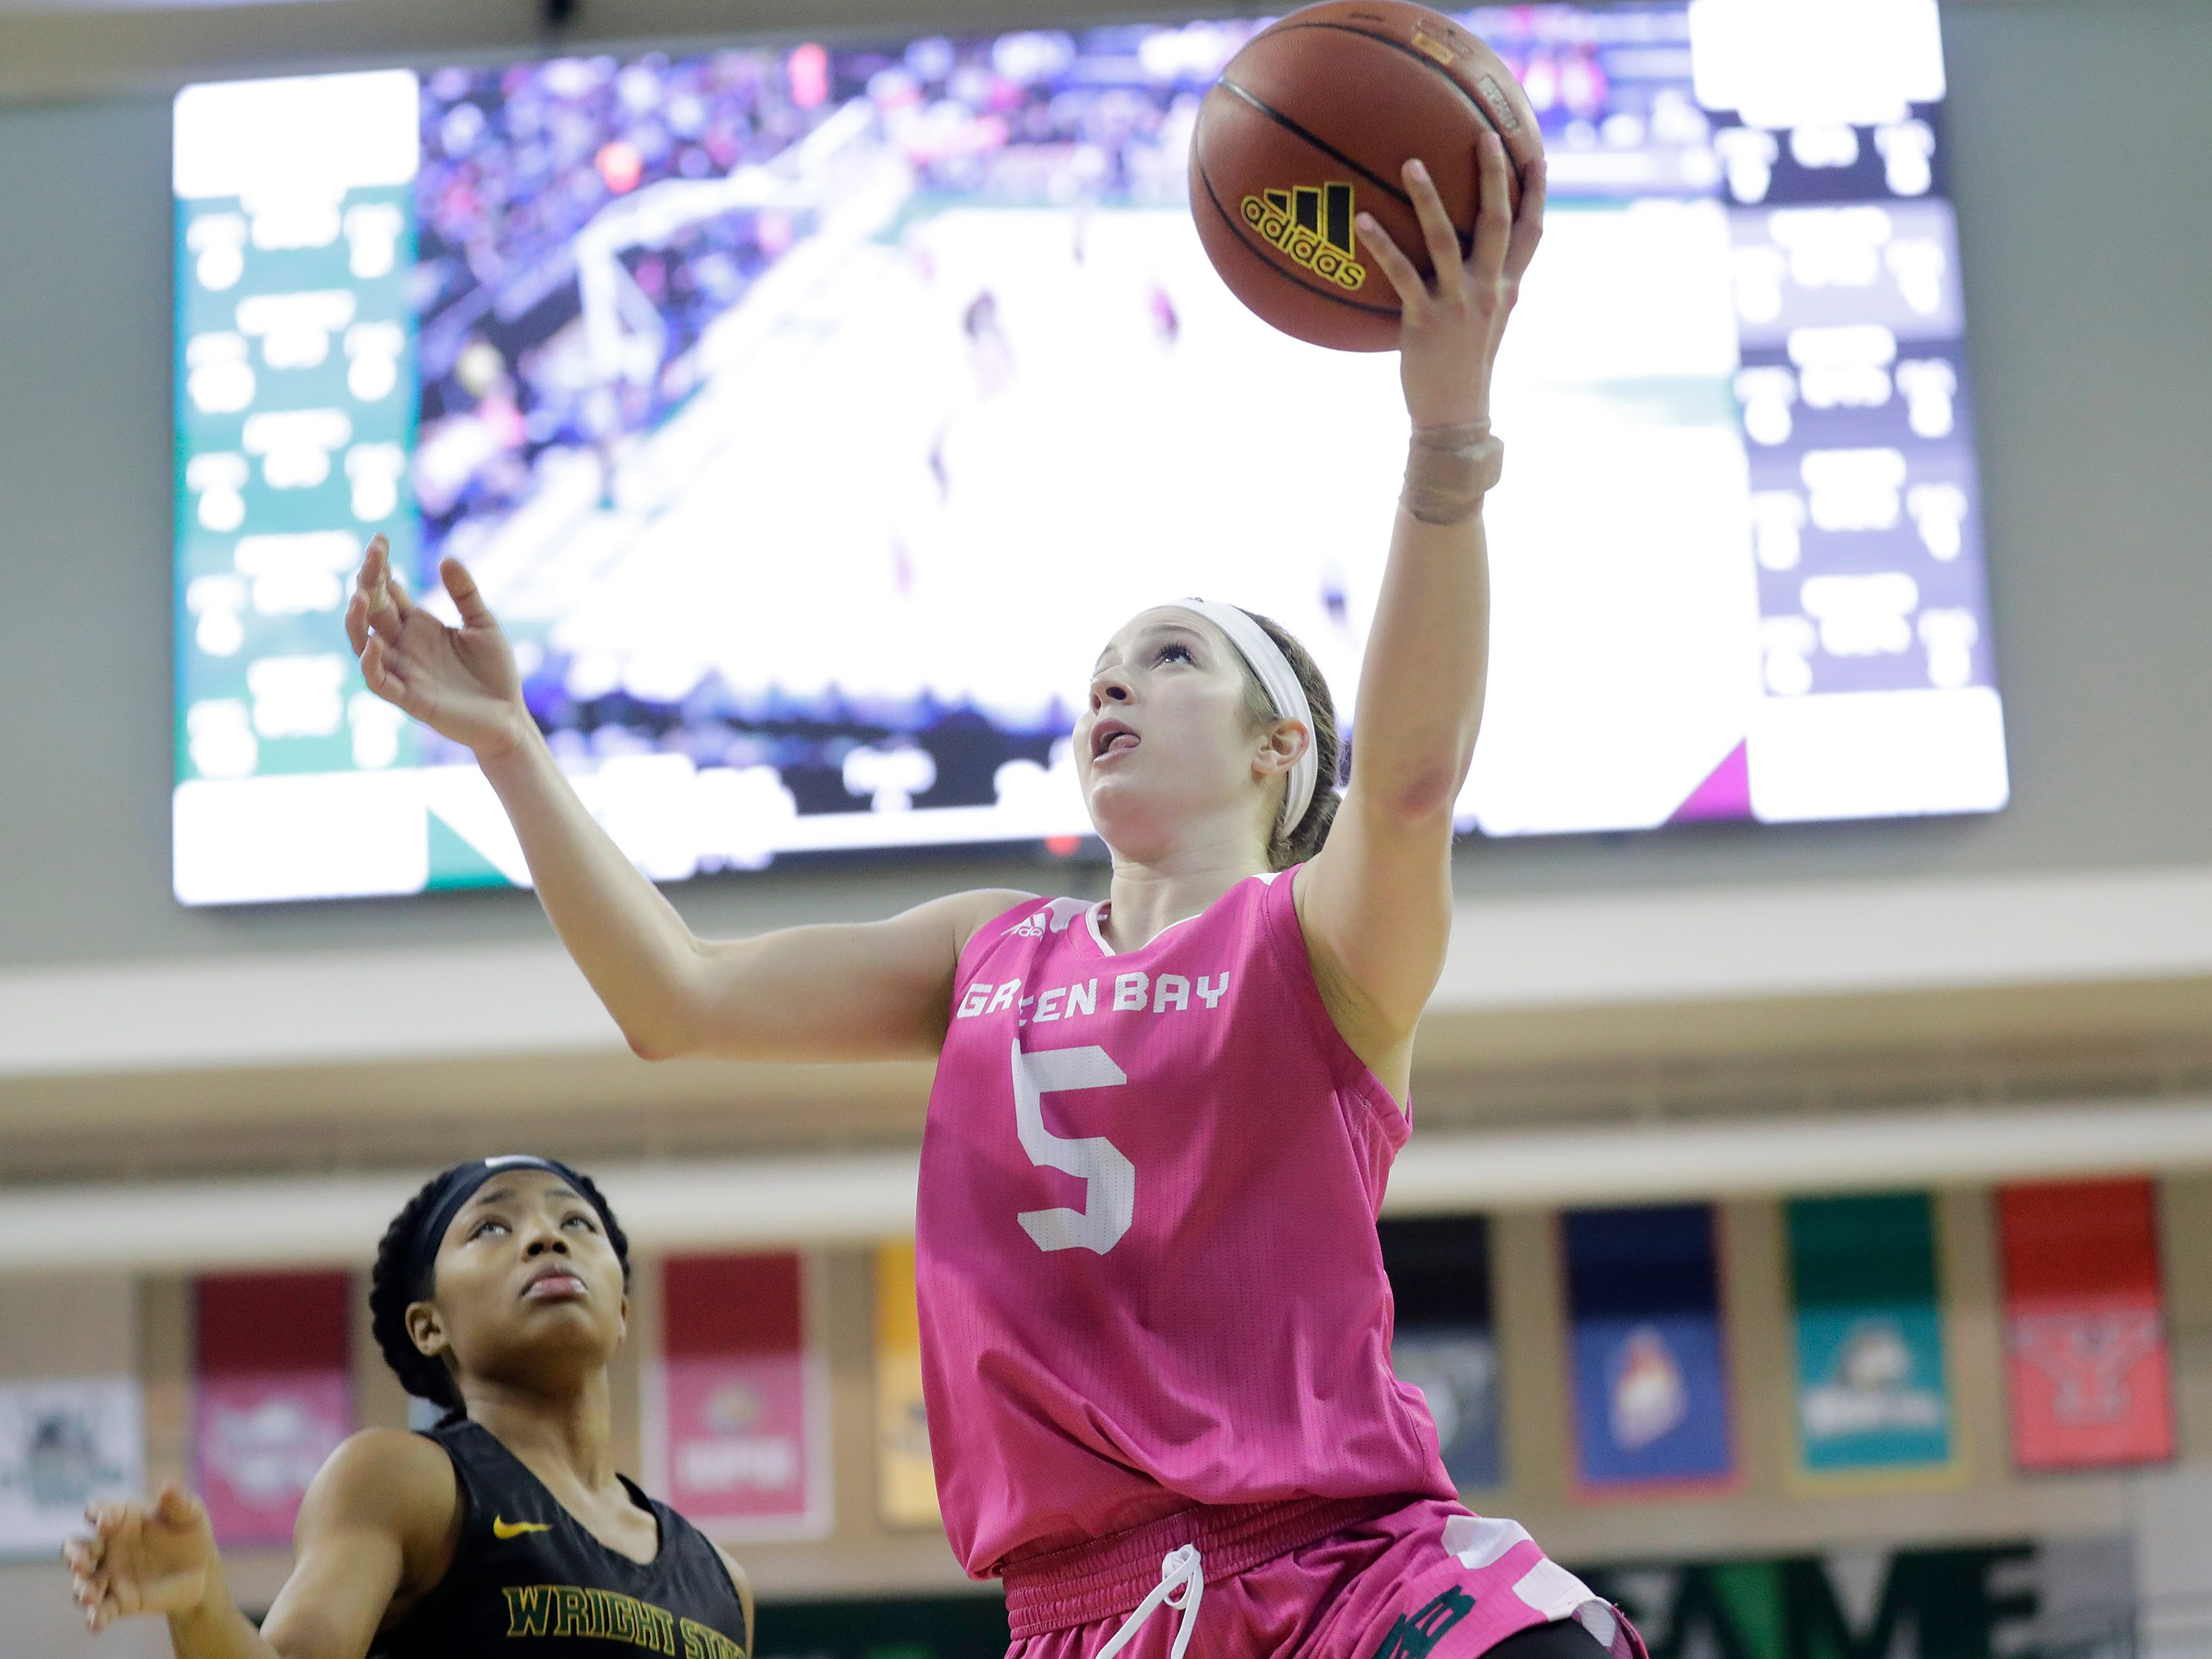 Green Bay Phoenix guard Laken James (5) scores against the Wright State Raiders in a Horizon League women's basketball game at the Kress Center on Saturday, February 9, 2019 in Green Bay, Wis.